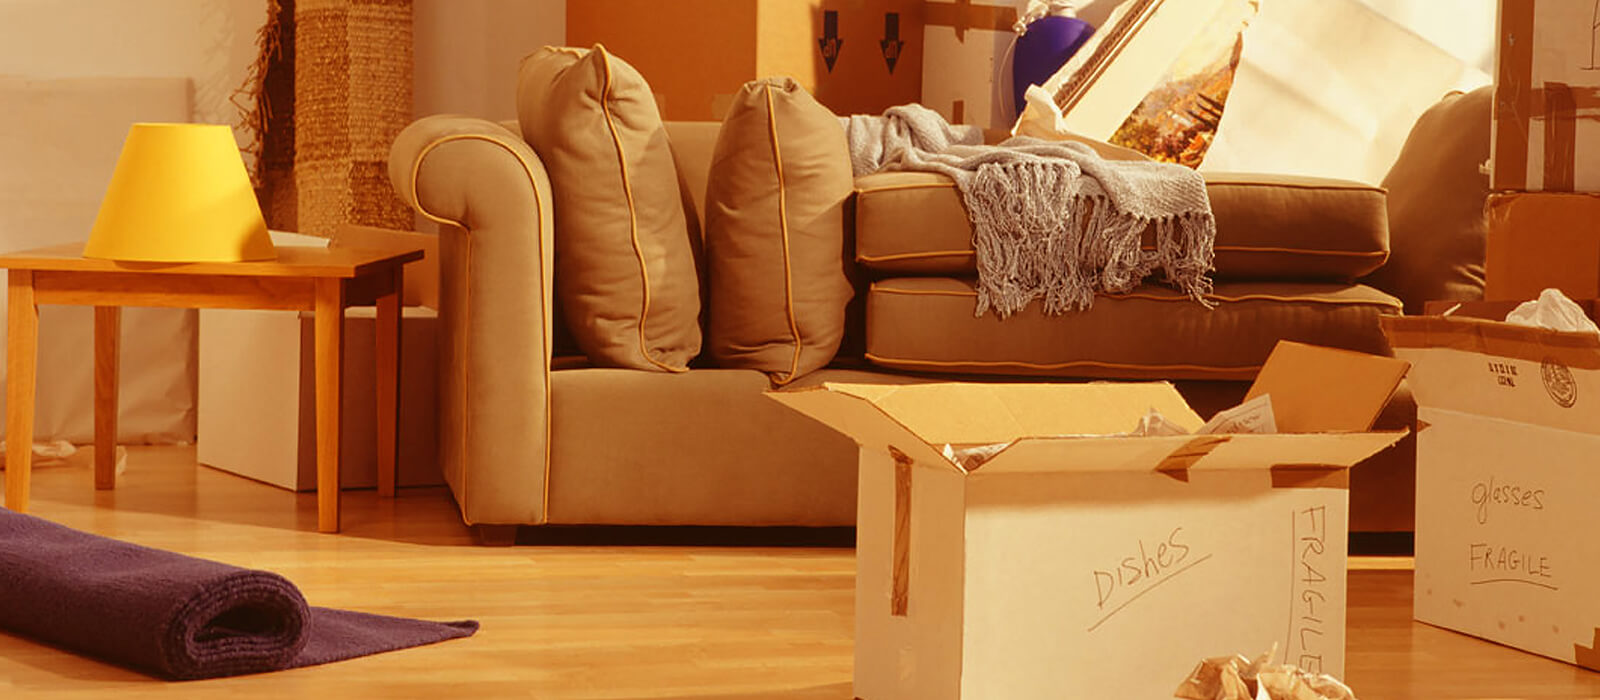 packers movers company kolkata